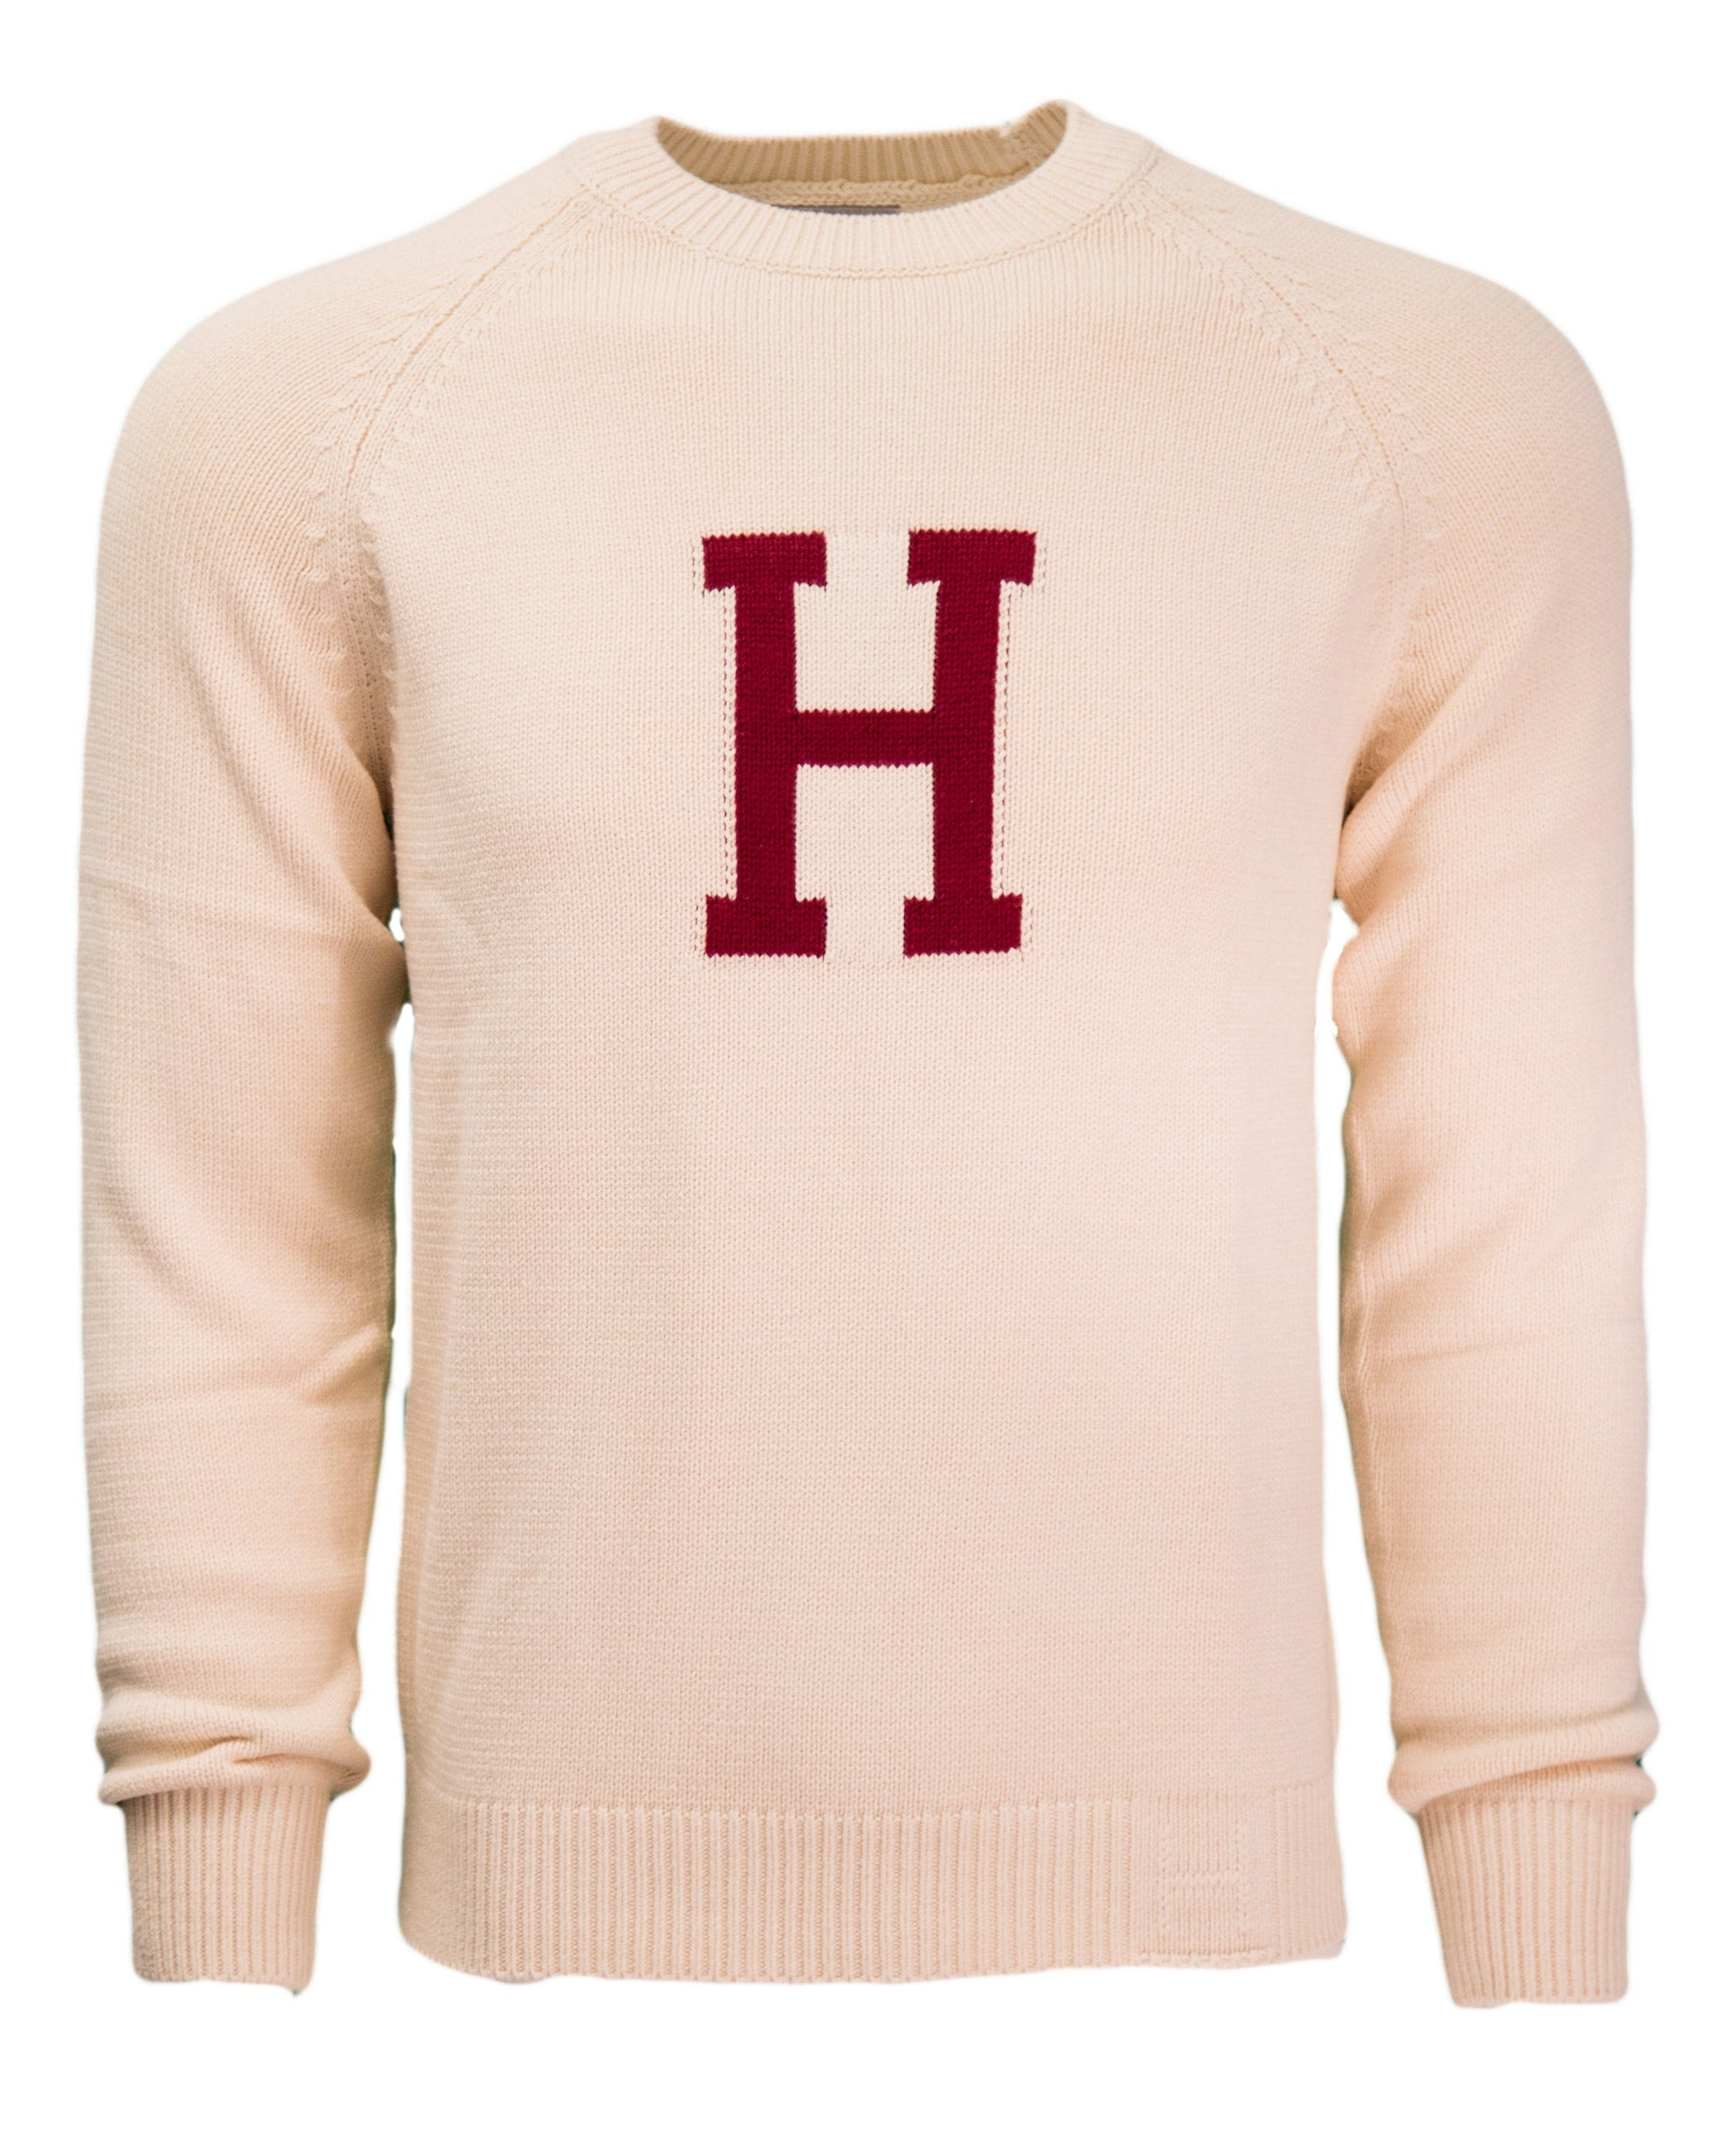 07f0a0c2f61f Merino Wool H Sweater – The Harvard Shop